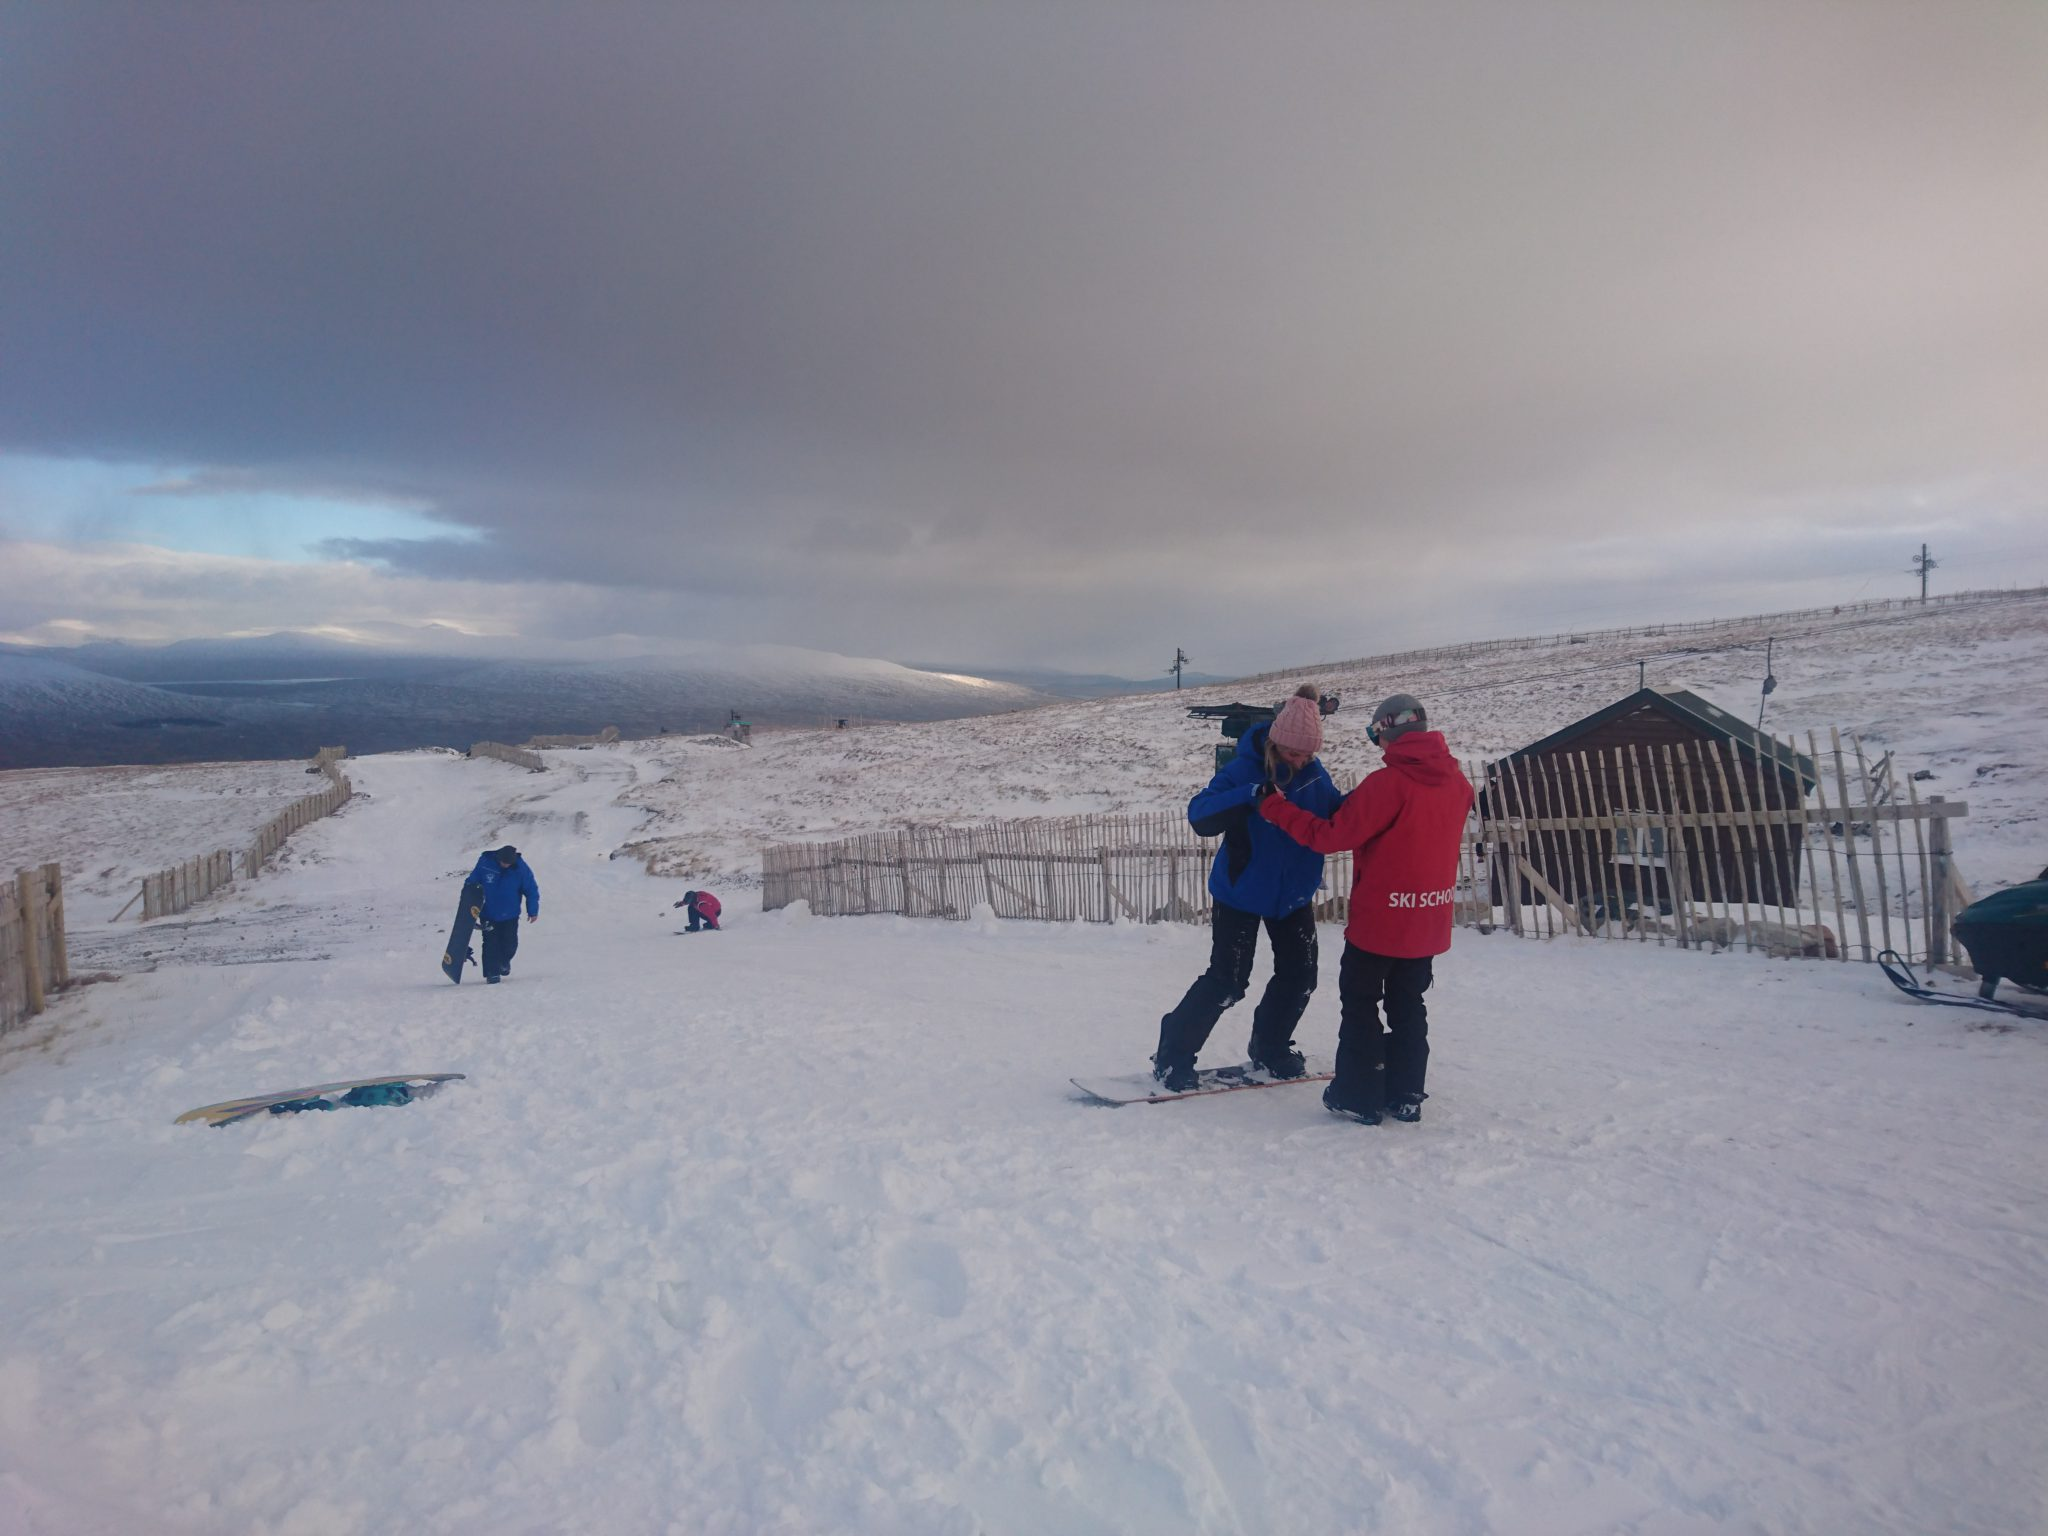 Glencoe snowboarding lessons: Learn to snowboard in Scotland